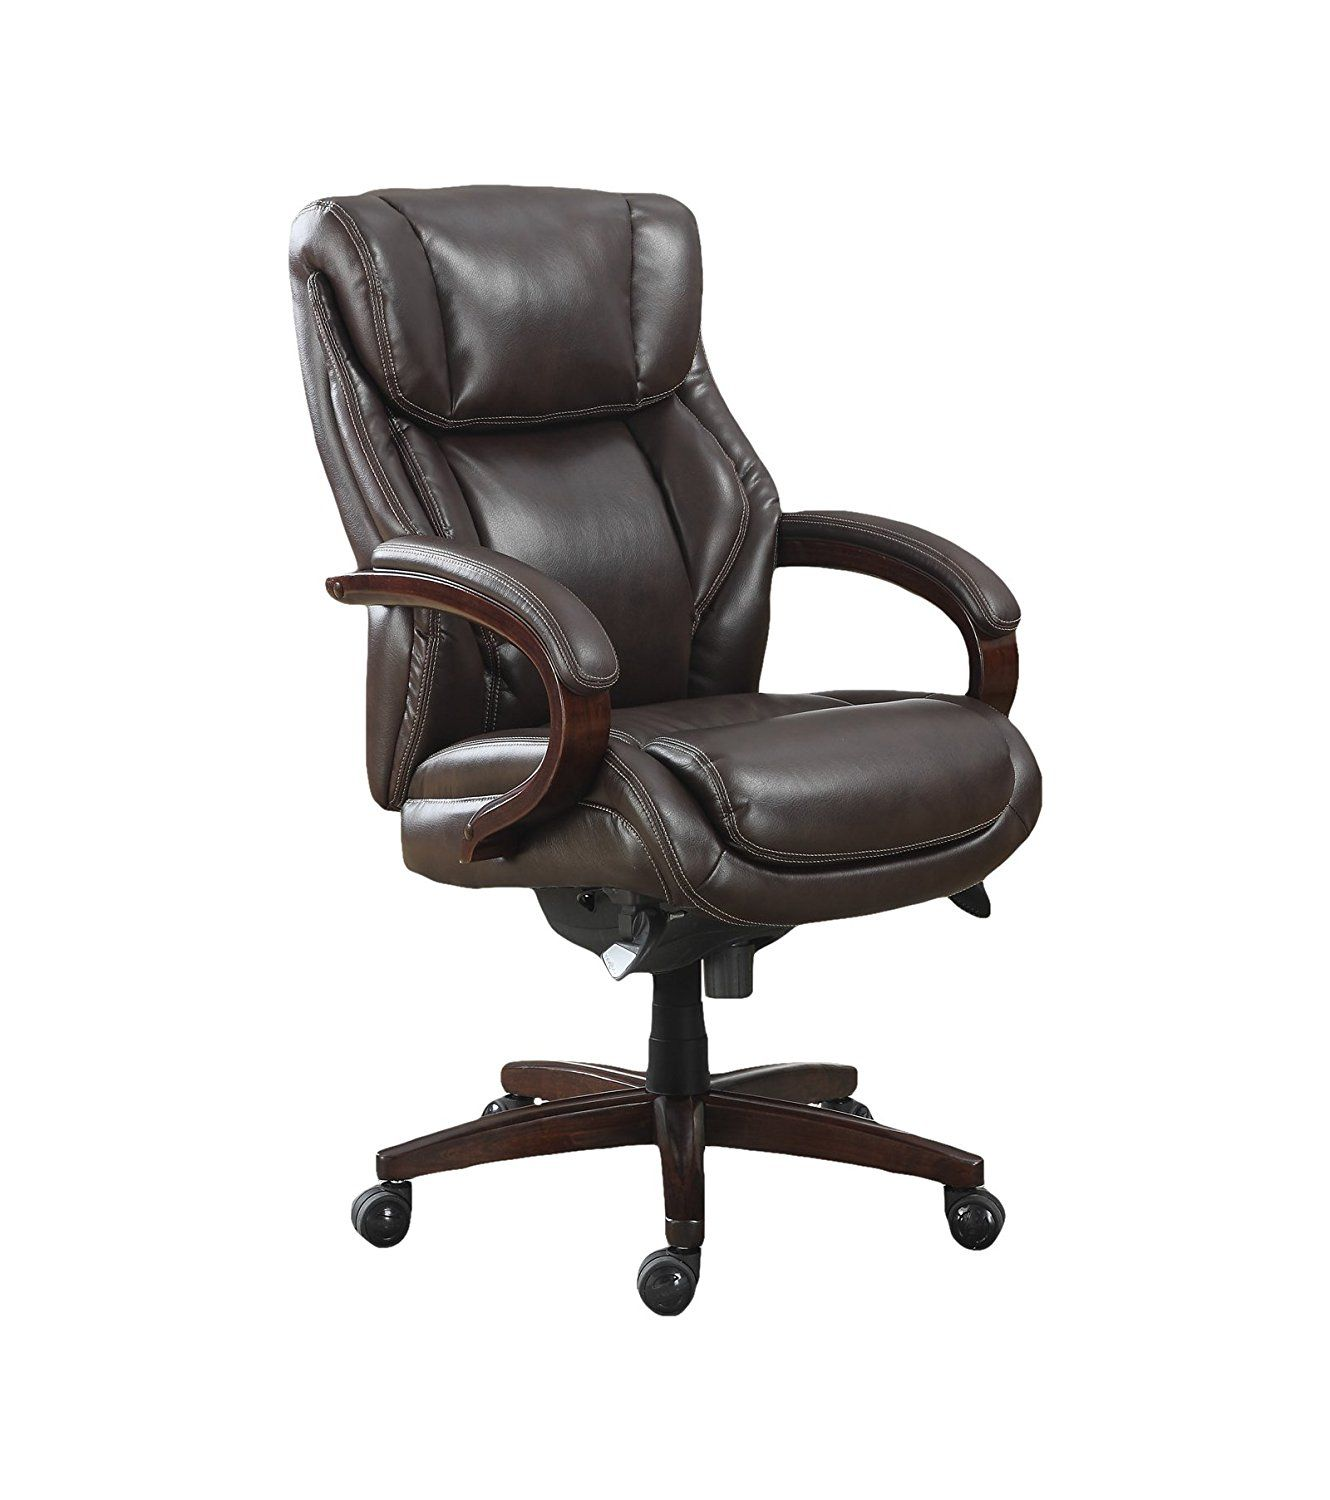 La Z Boy Trafford Big Tall Executive Bonded Leather Office Chair Covers Venue Dressing This Is My Exact Lay Desk At Remax But Mine